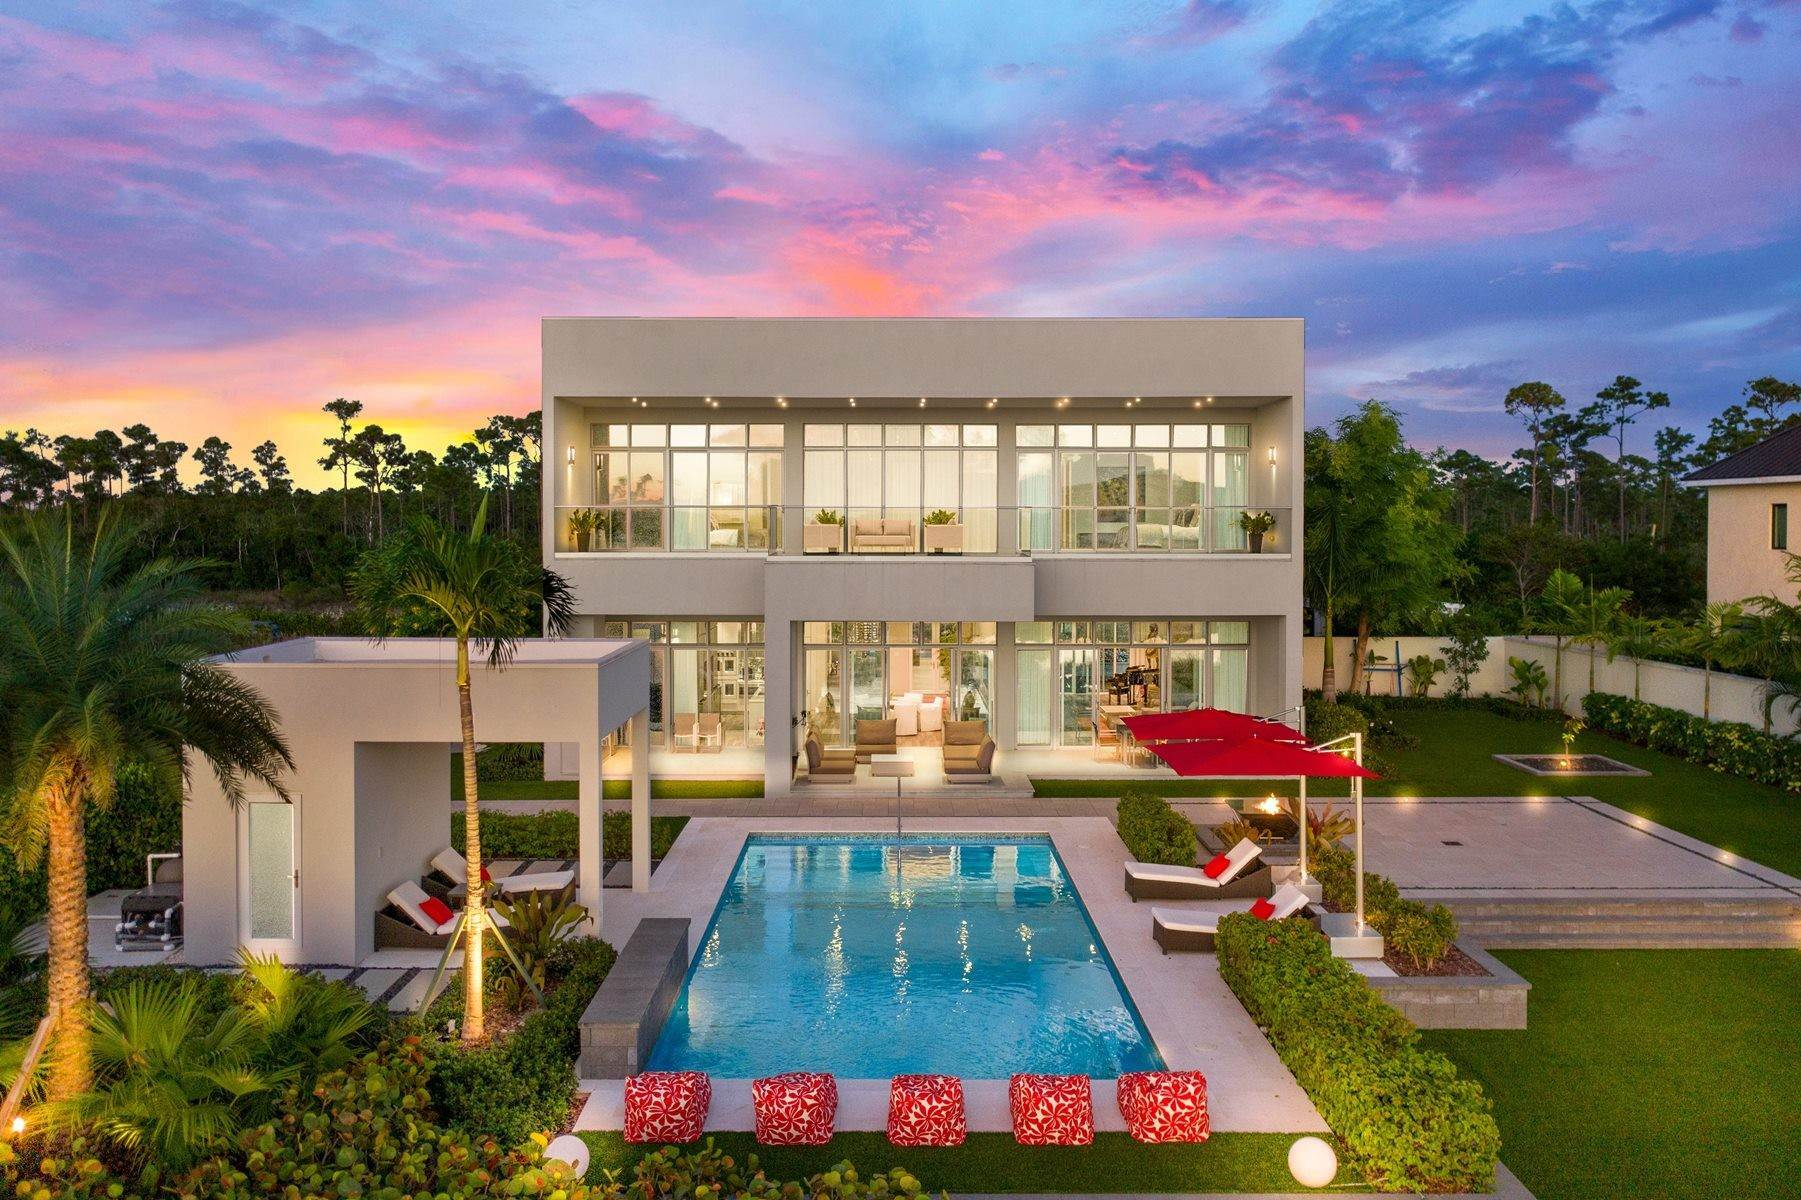 Single Family Homes for Sale at In Vino Veritas - MLS 39165 Albany, Nassau And Paradise Island, Bahamas